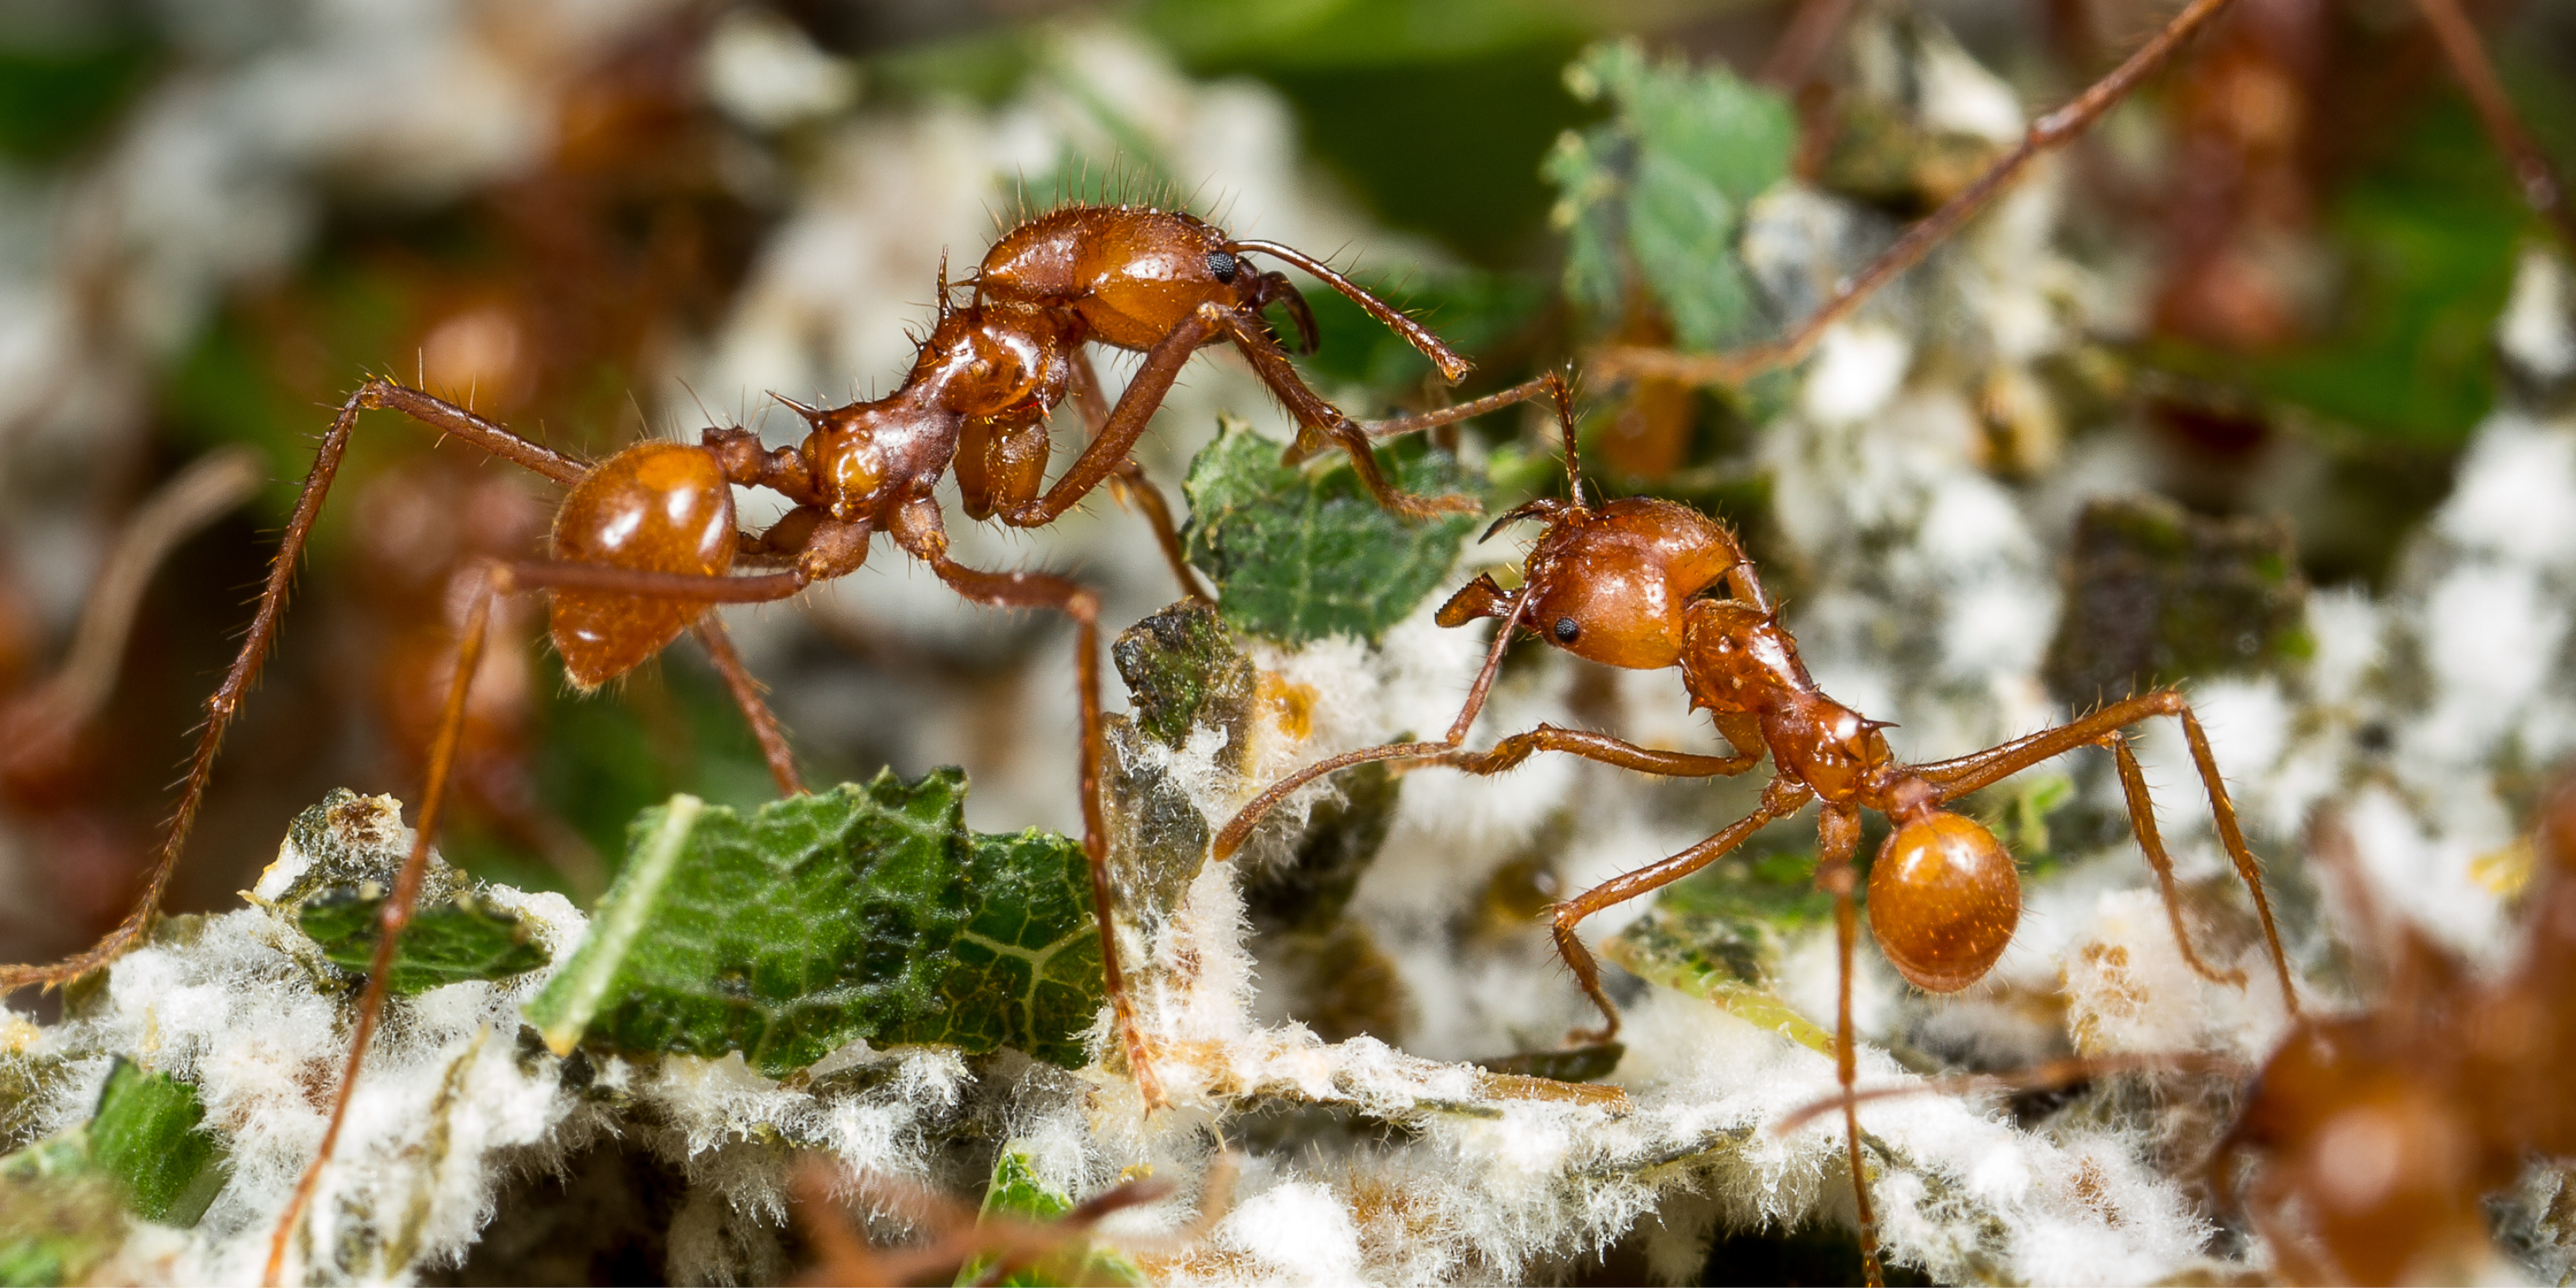 Deadly Mind-Controlling Predatory Fungus turning Ants into 'Zombies' Discovered